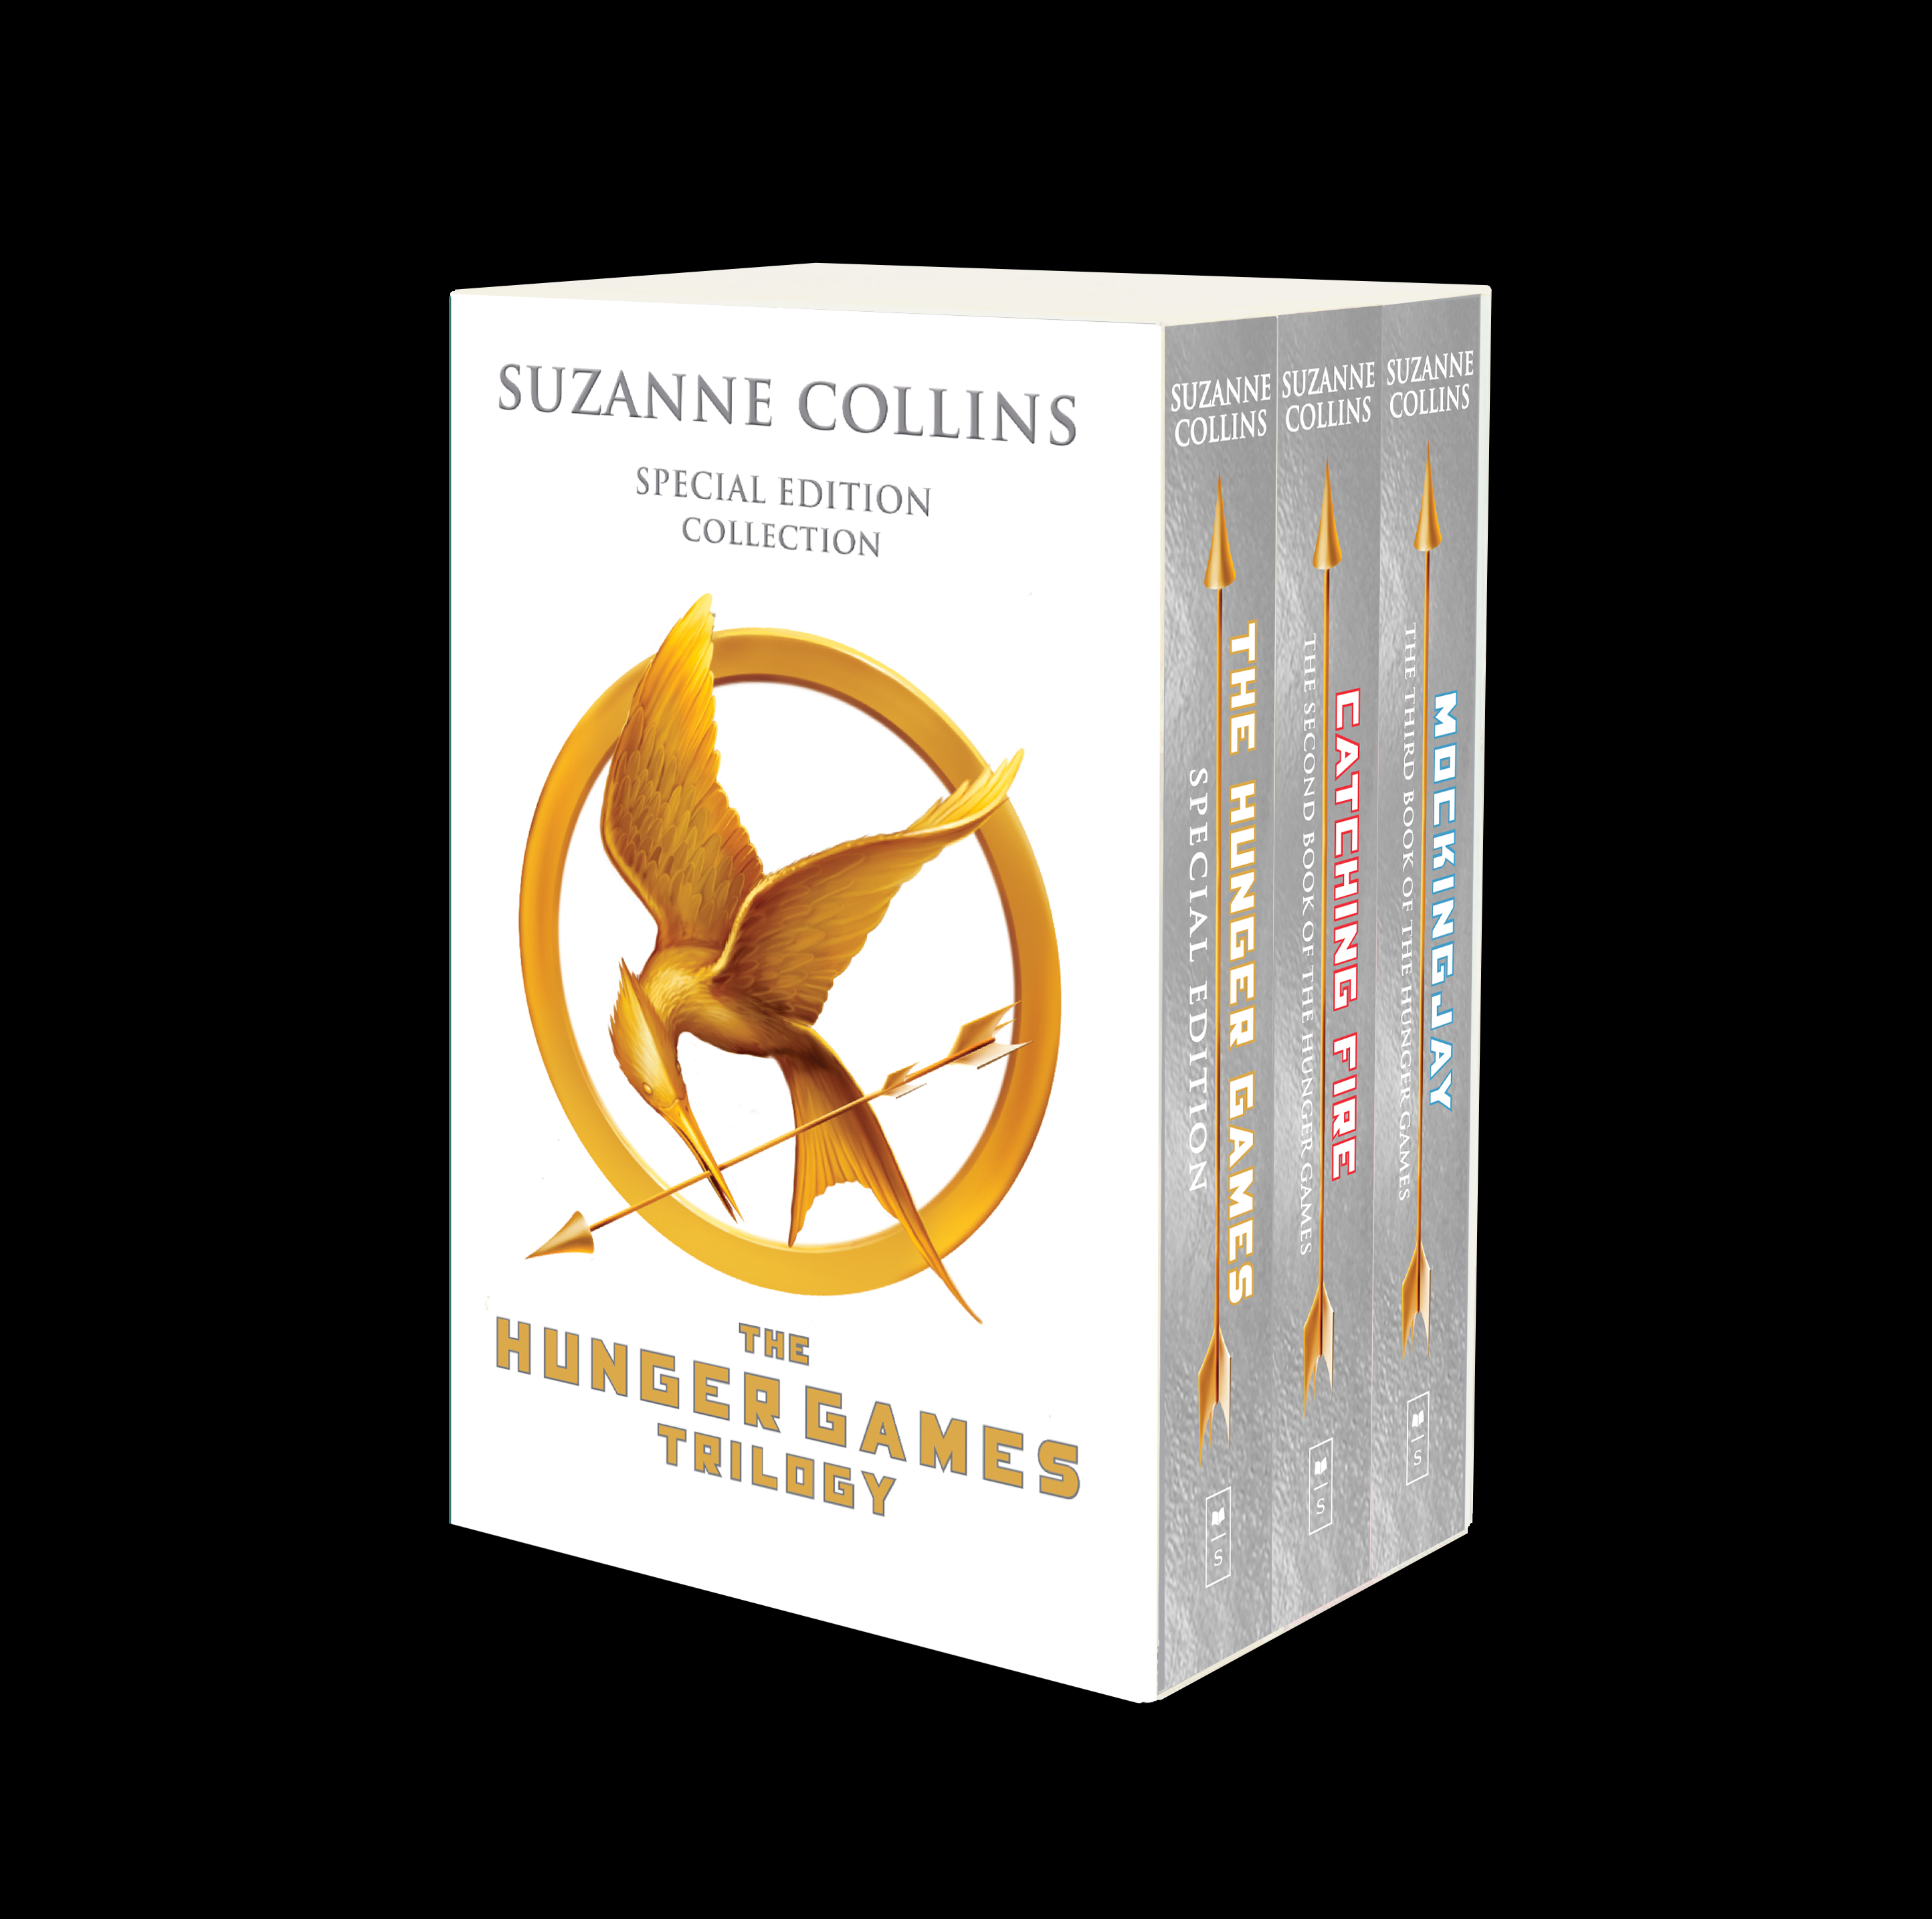 Libros De Suzanne Collins The Hunger Games Scholastic Media Room